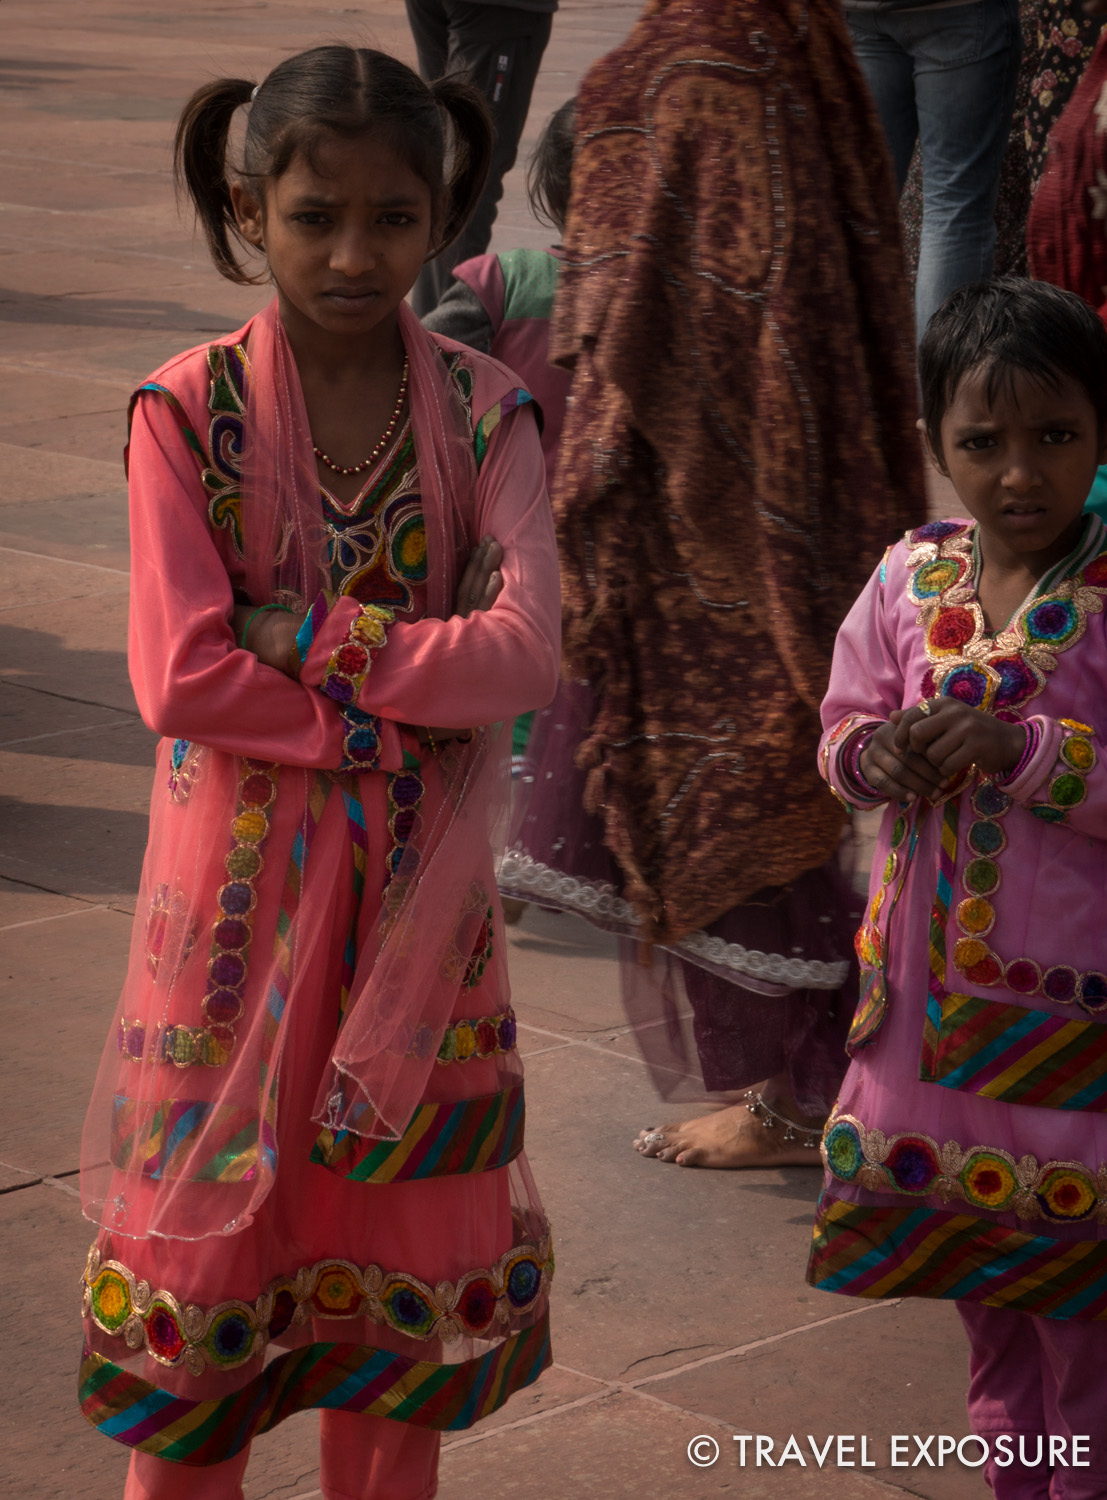 Girls all dressed up at the Jama Masjid